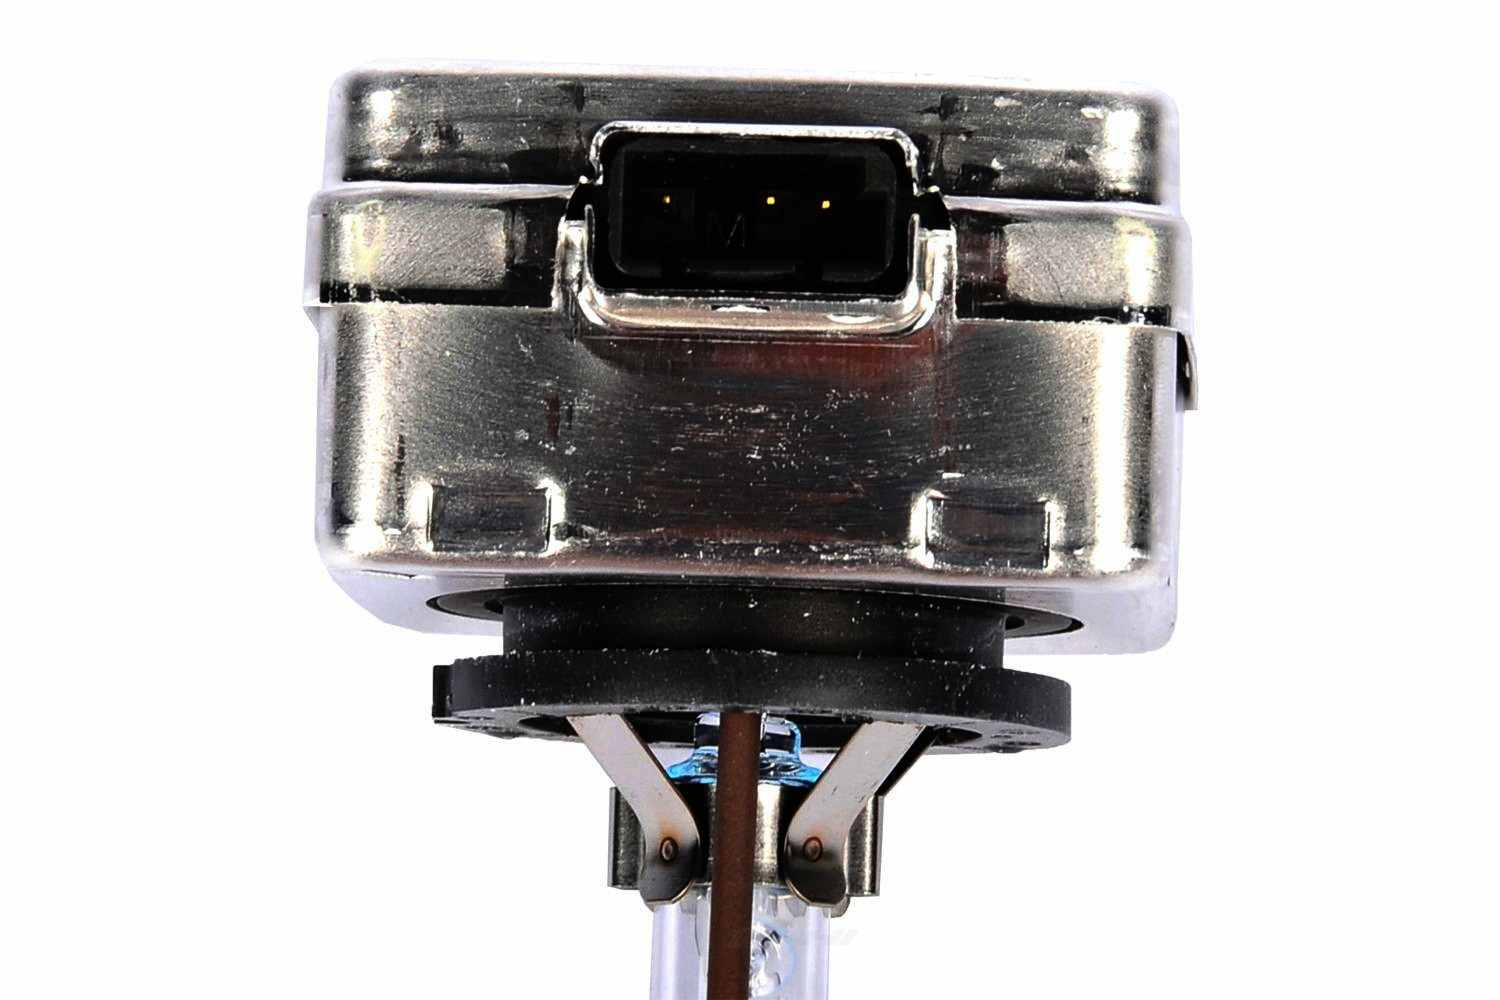 ACDELCO GM ORIGINAL EQUIPMENT - Headlight Bulb - DCB 13587720